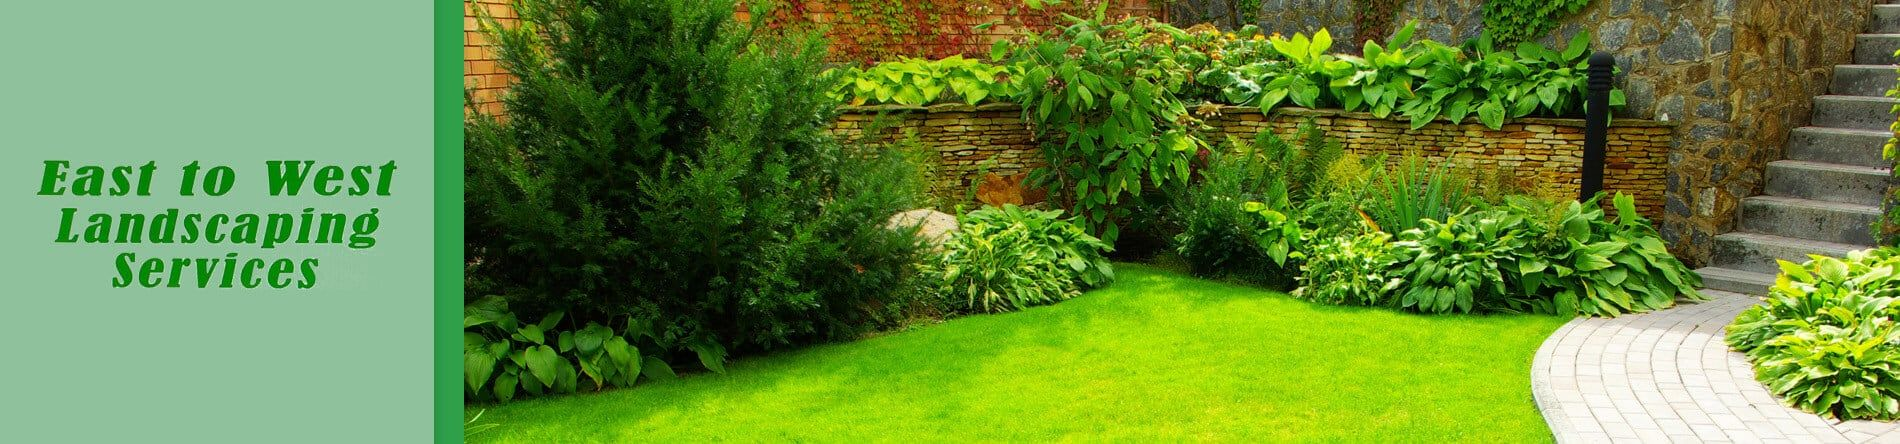 East to West Landscaping Services is a Professional